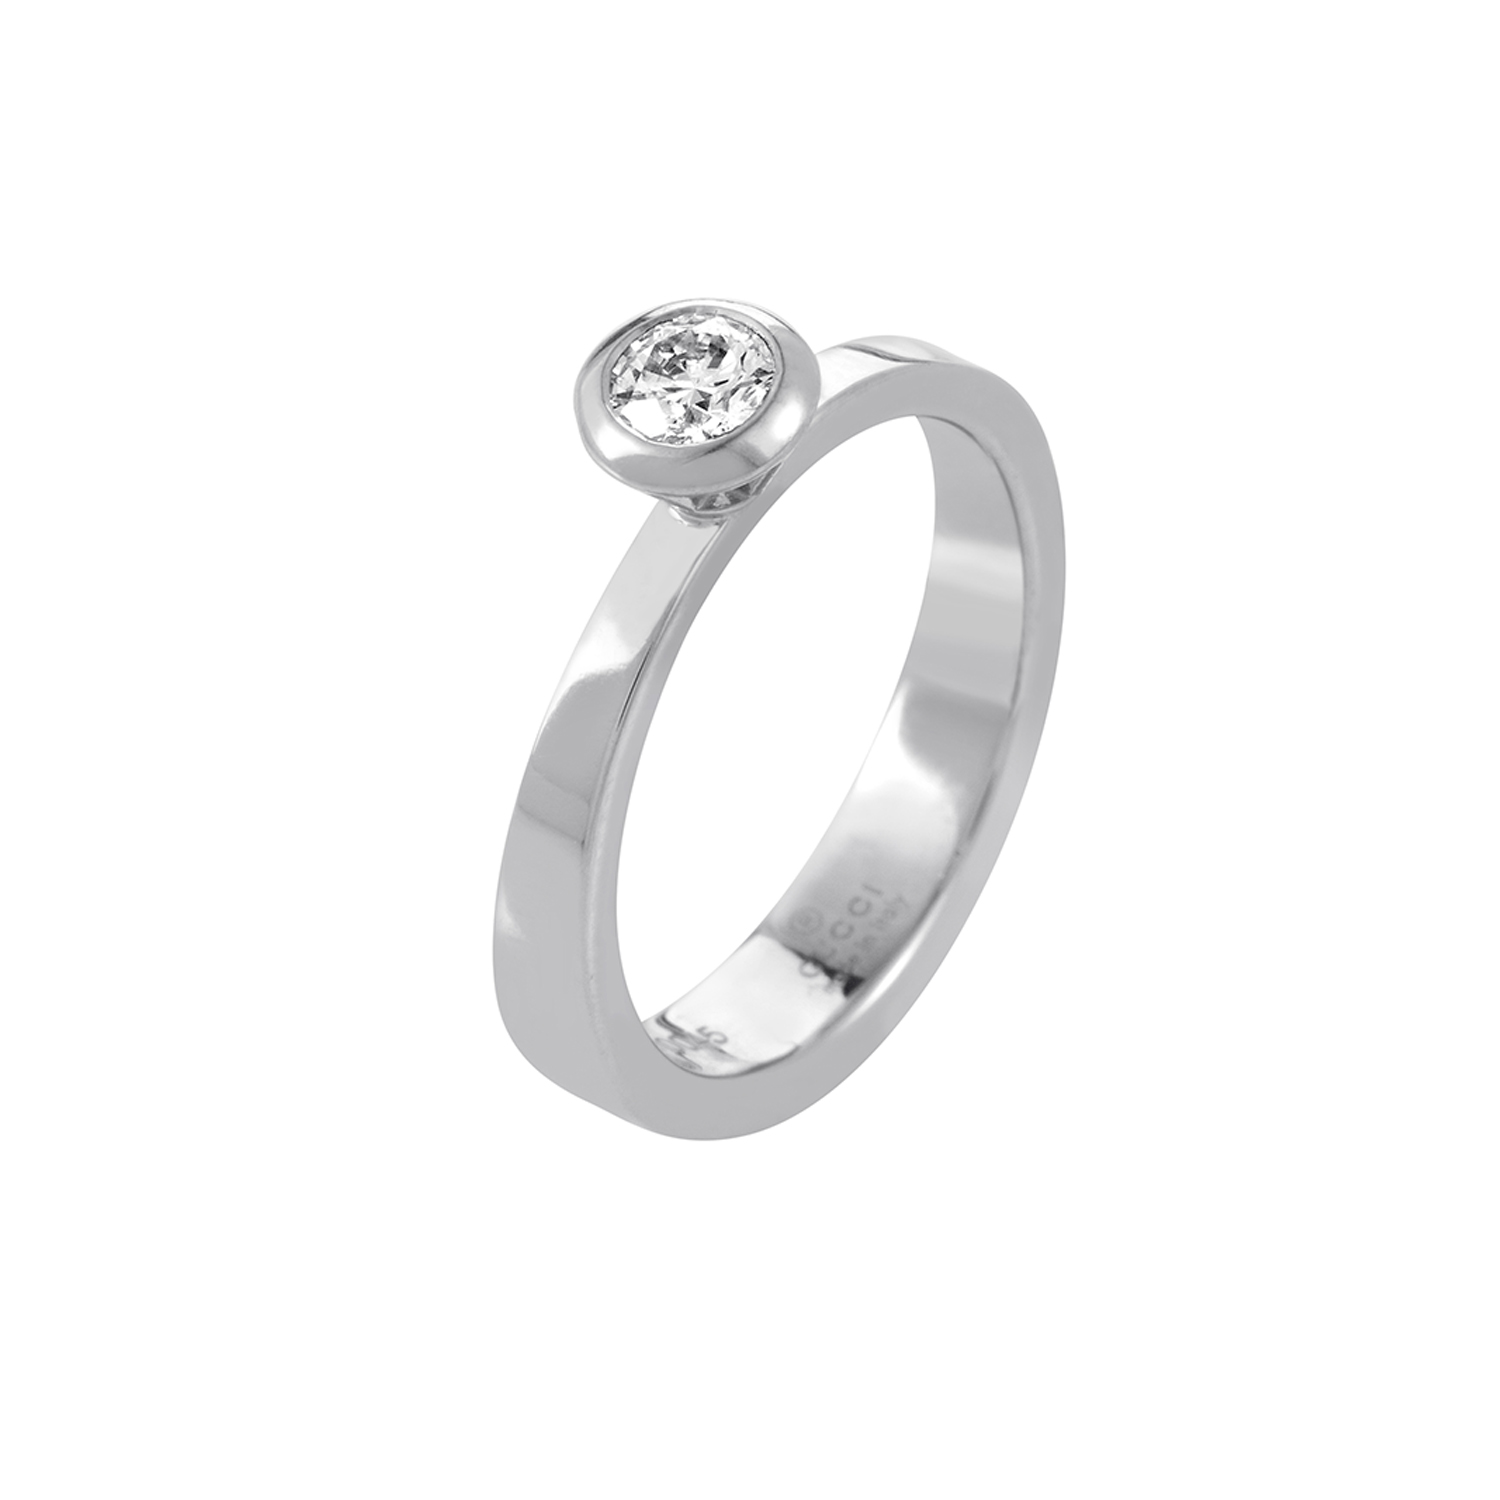 Gucci 18K White Gold .33ct Diamond Solitaire Engagement Ring